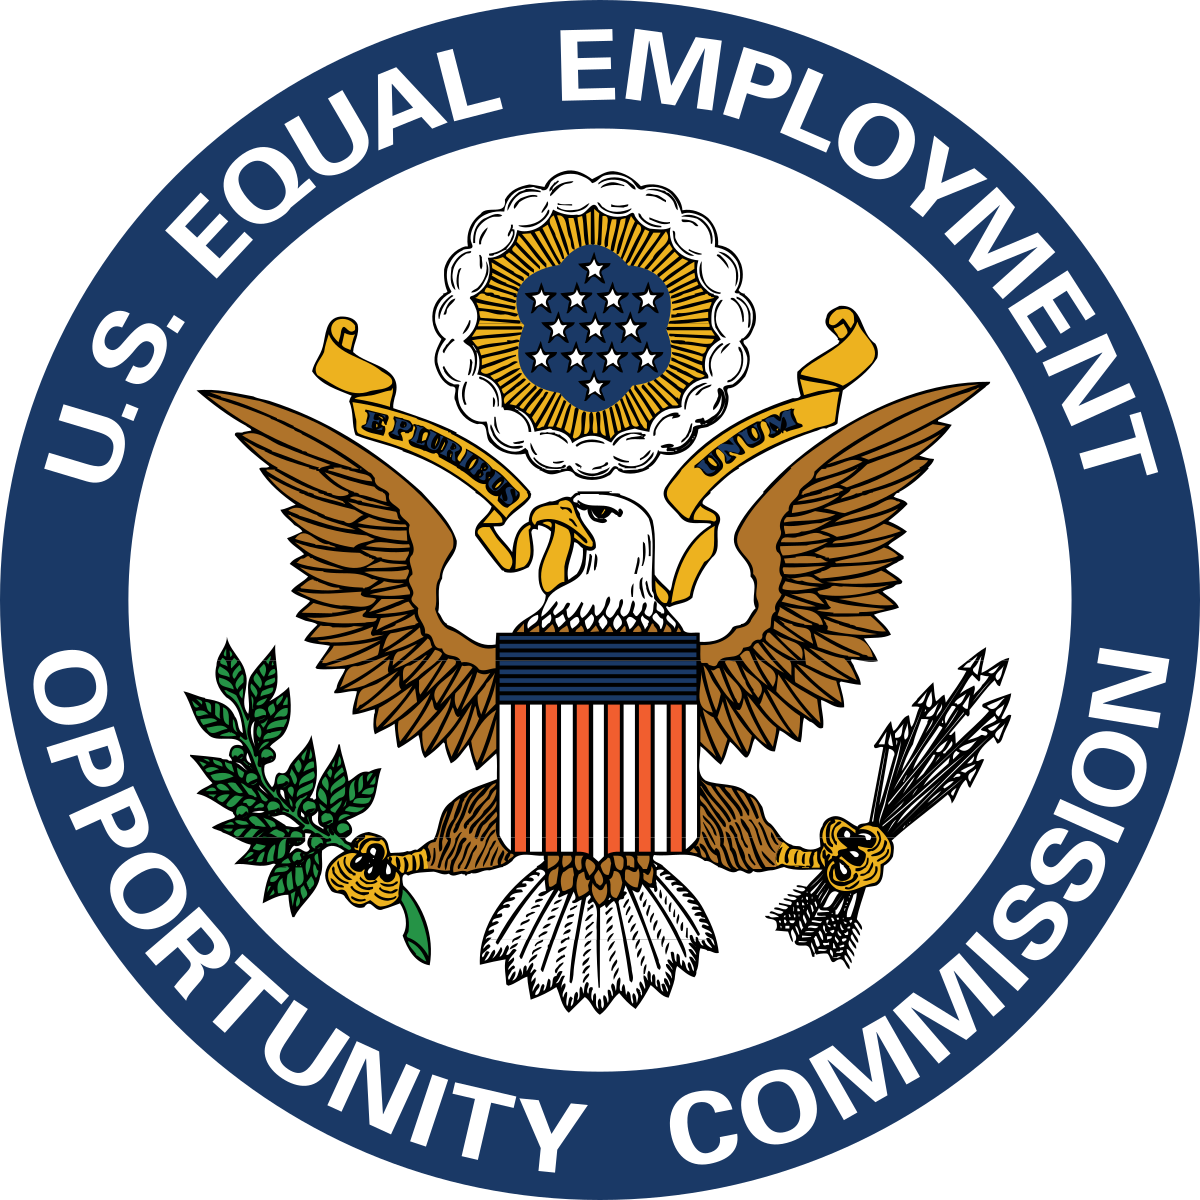 Job vector government employee. Equal employment opportunity commission